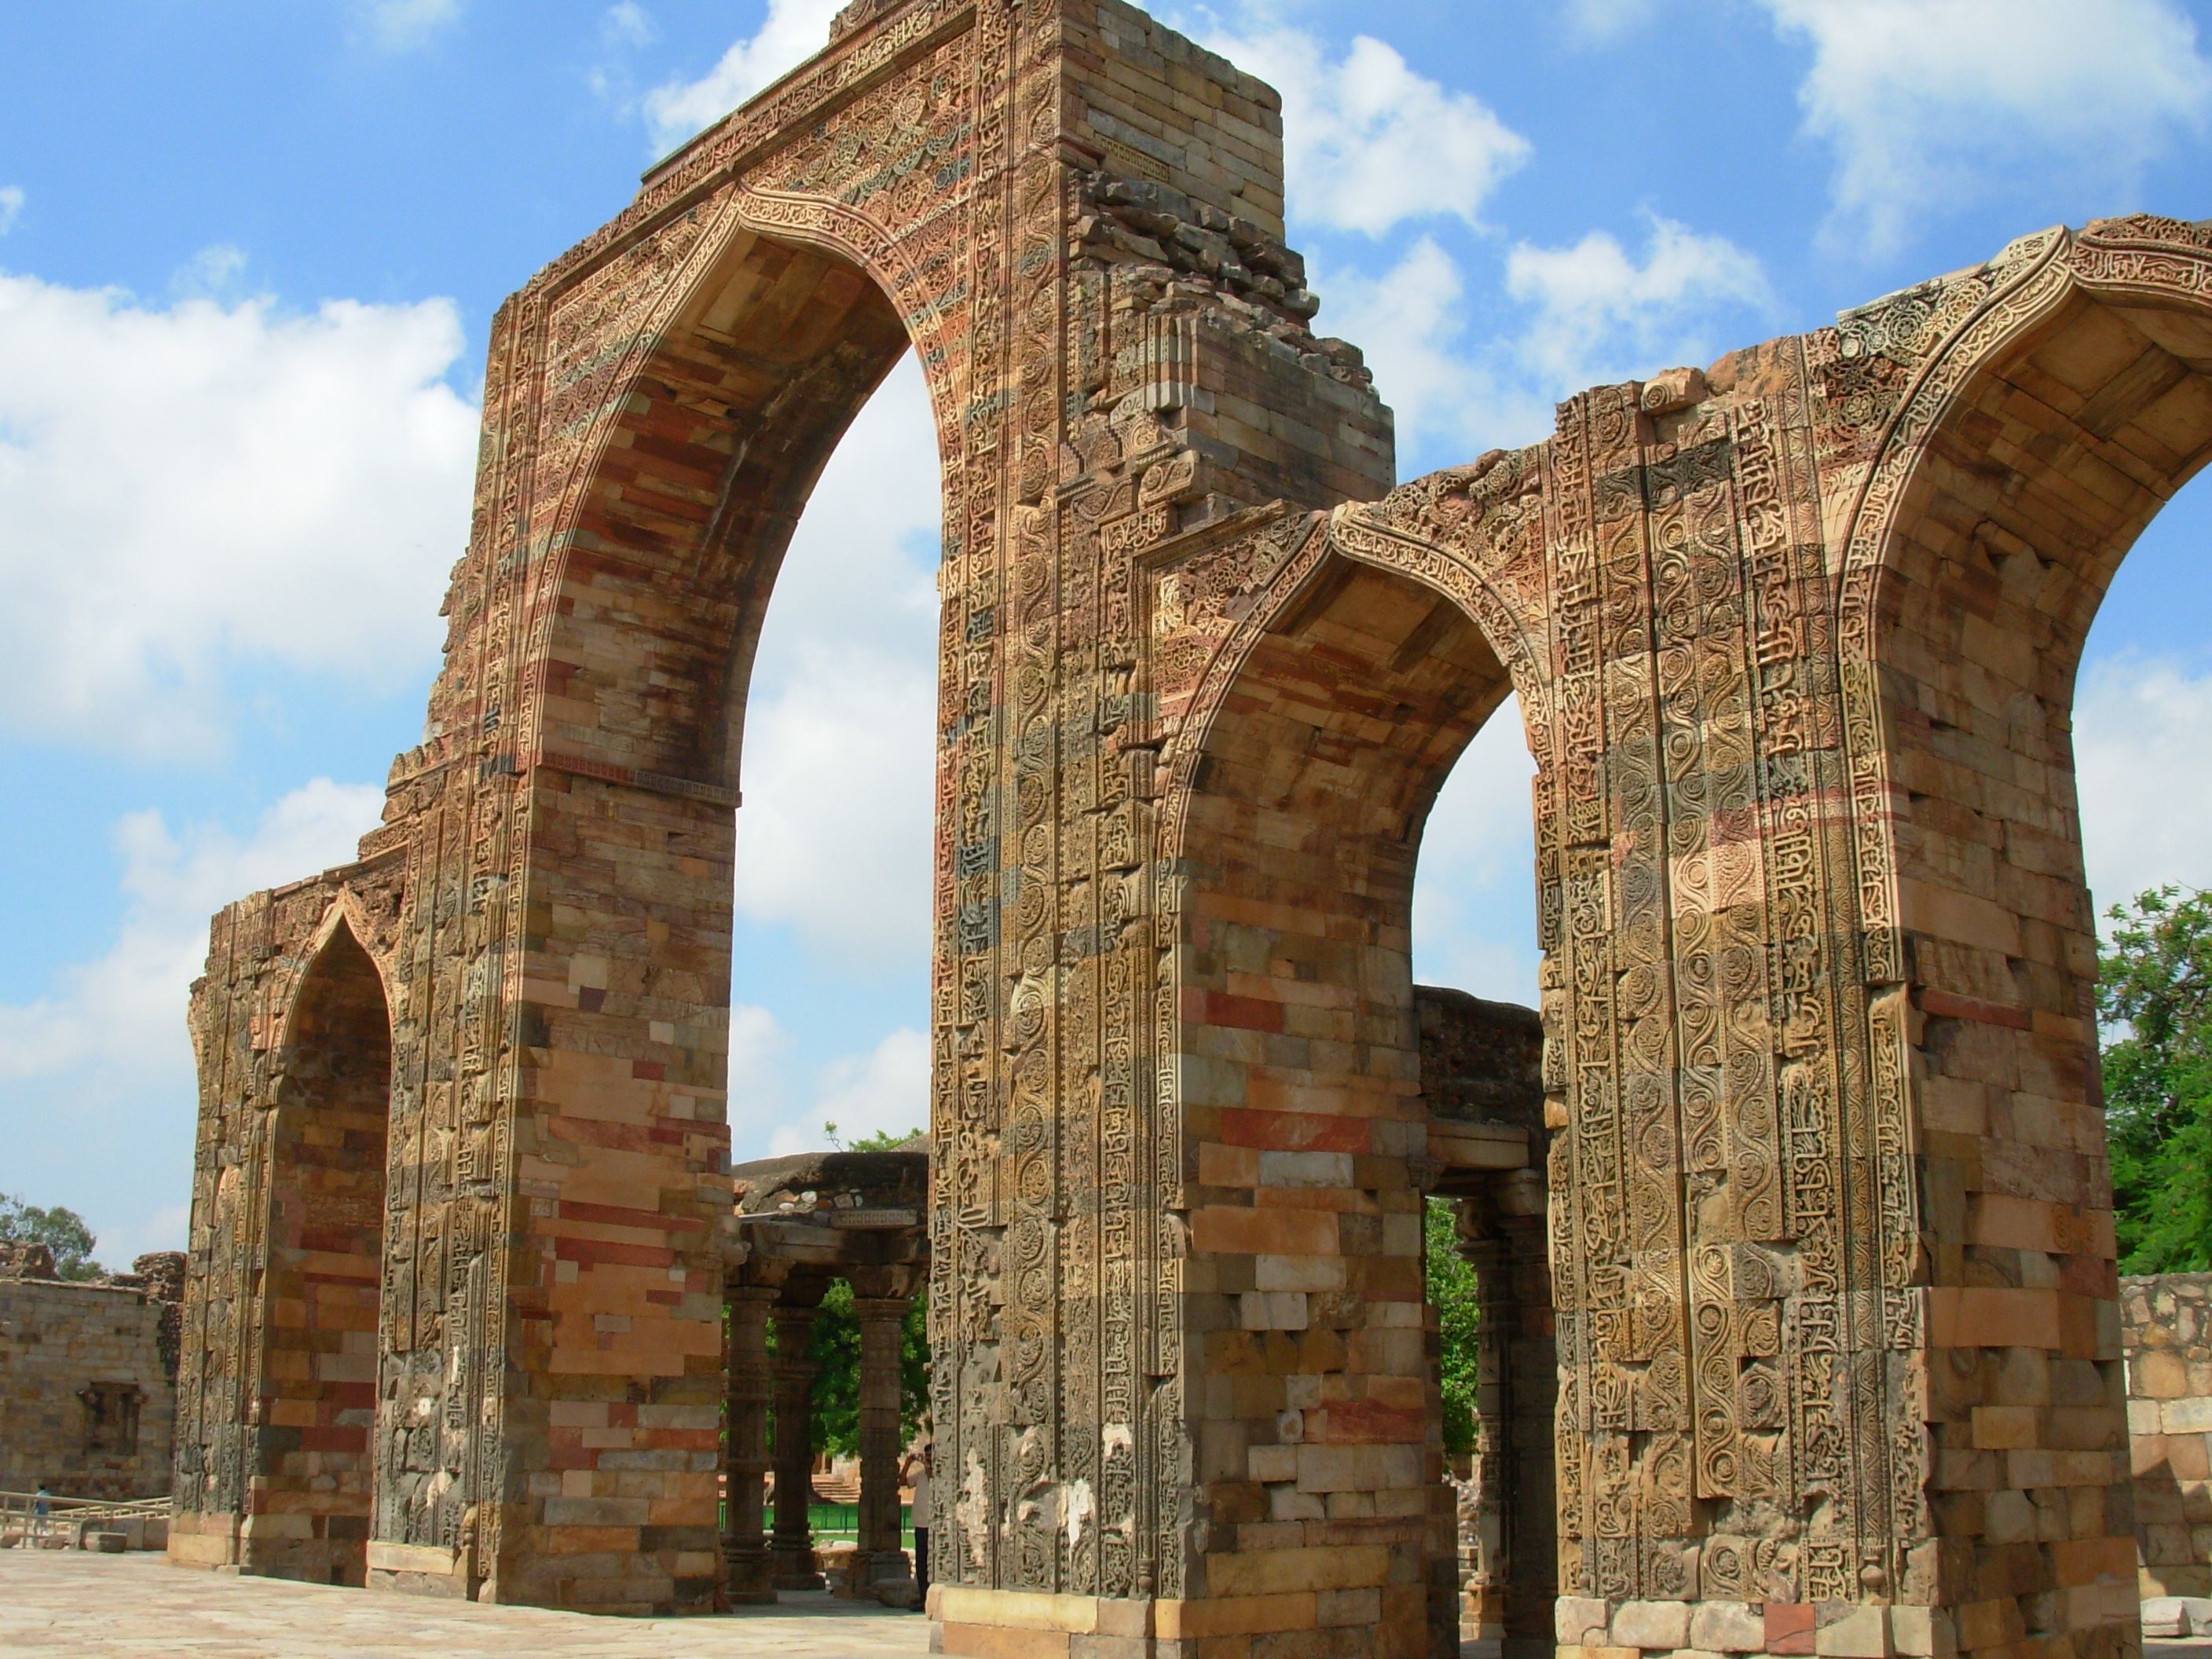 File:Corbelled arched ... Quwwat Ul Islam Mosque